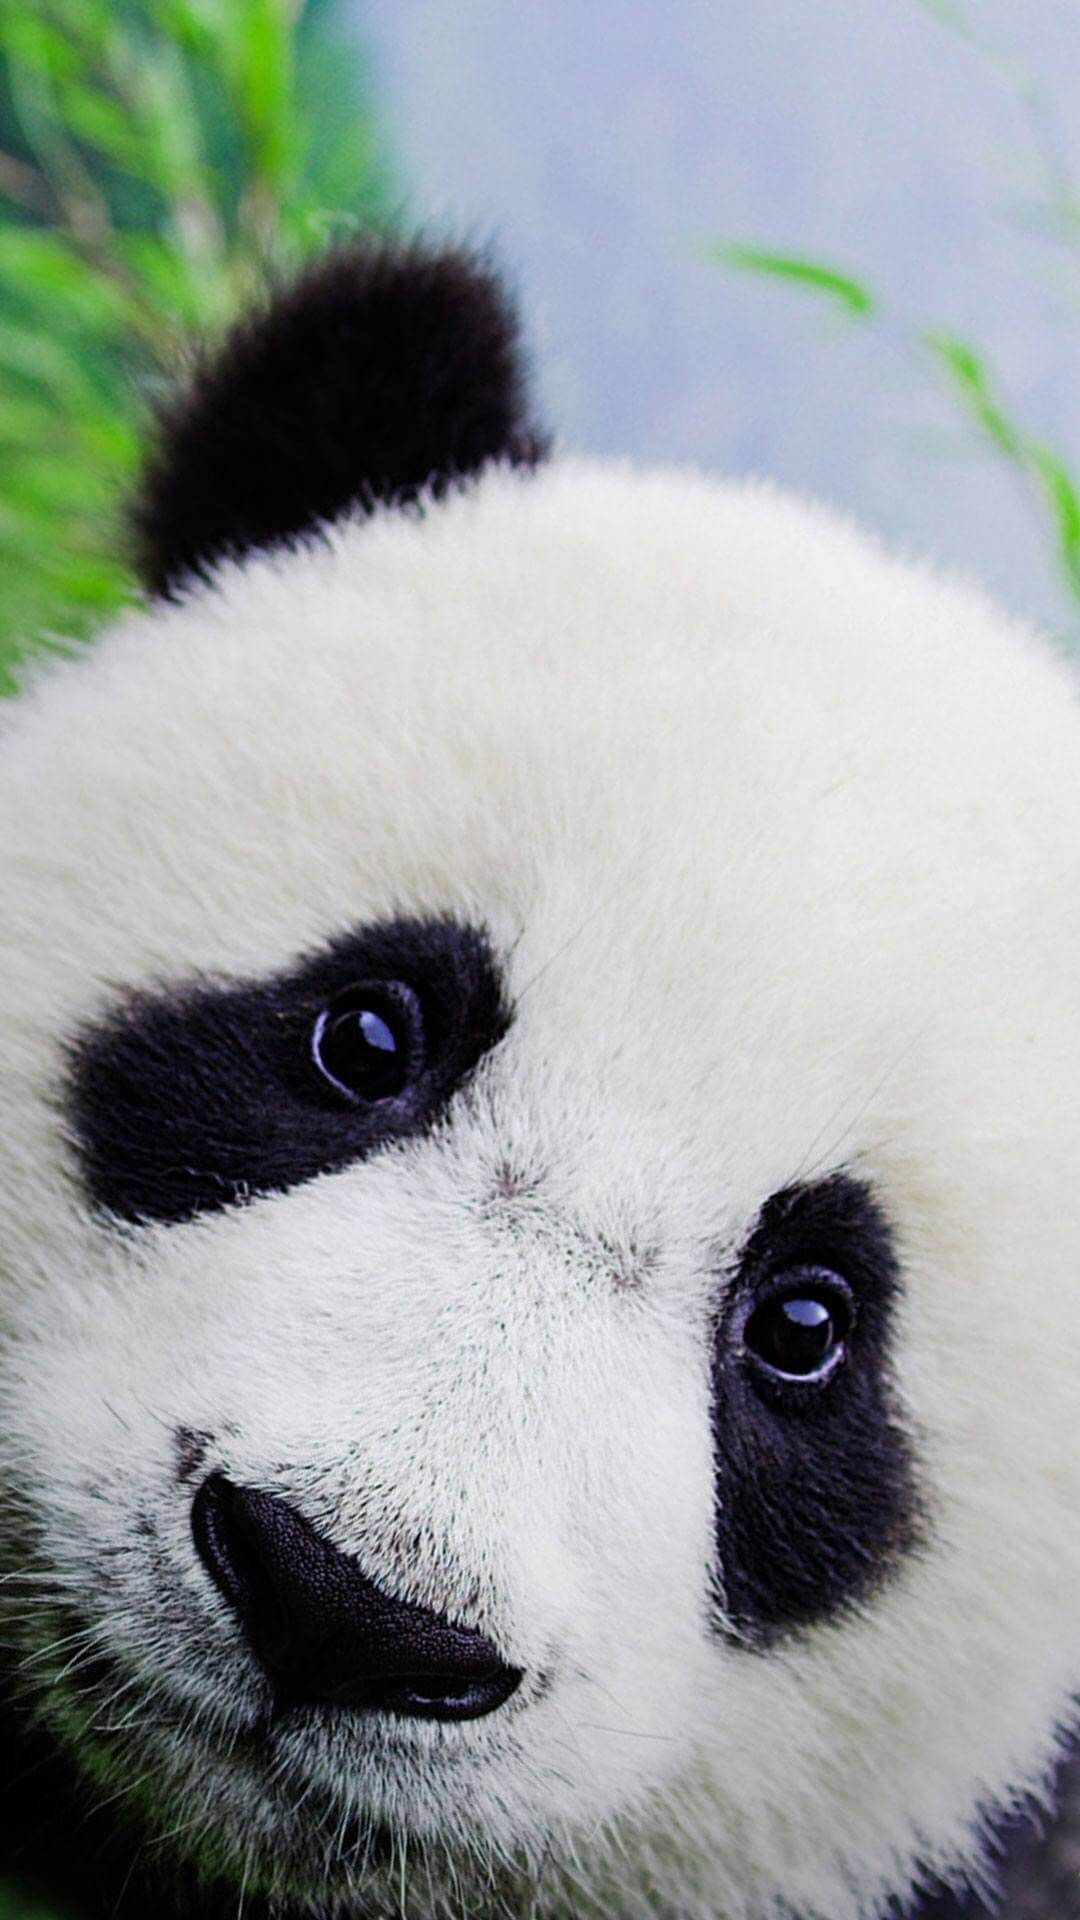 Baby Panda Android Iphone Desktop Hd Backgrounds Wallpapers 1080p 4k 112008 Hdwallpapers Andr Cute Baby Animals Panda Wallpapers Animal Wallpaper